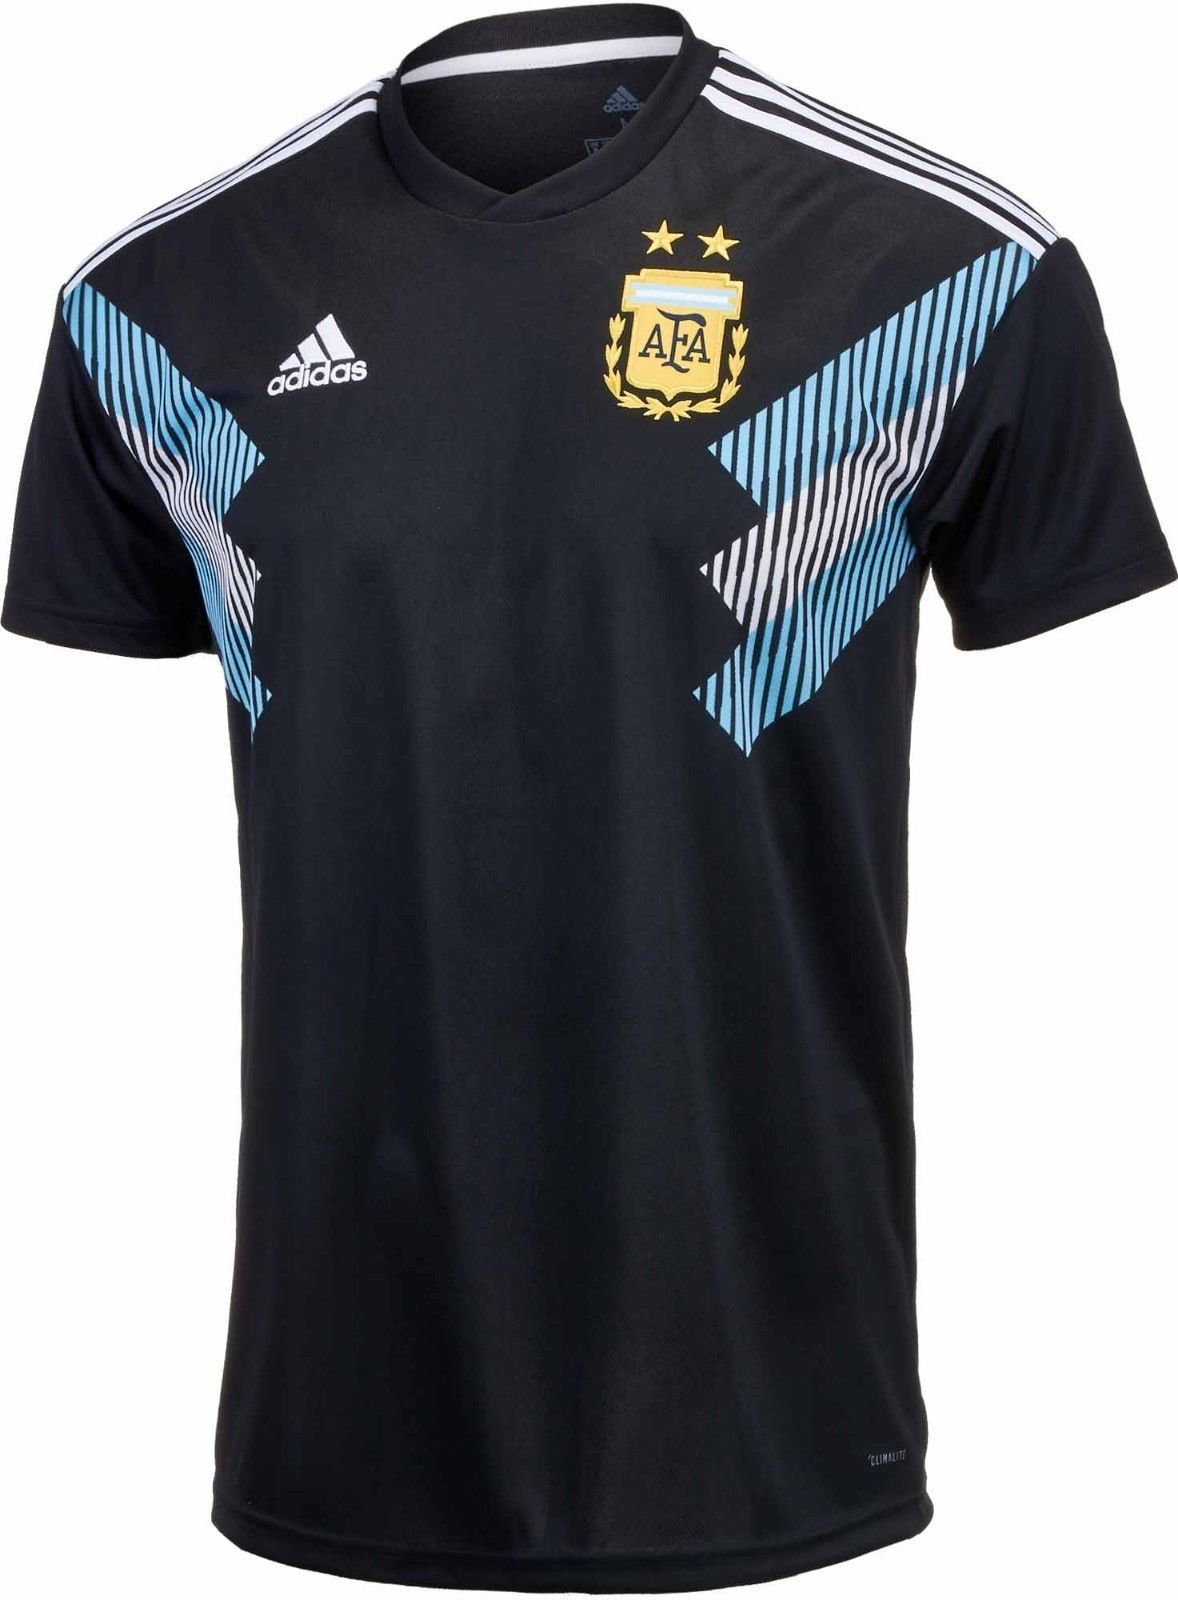 6a69ac46ae5 adidas Argentina Official 2018 Away Soccer Football Jersey (eBay Link)